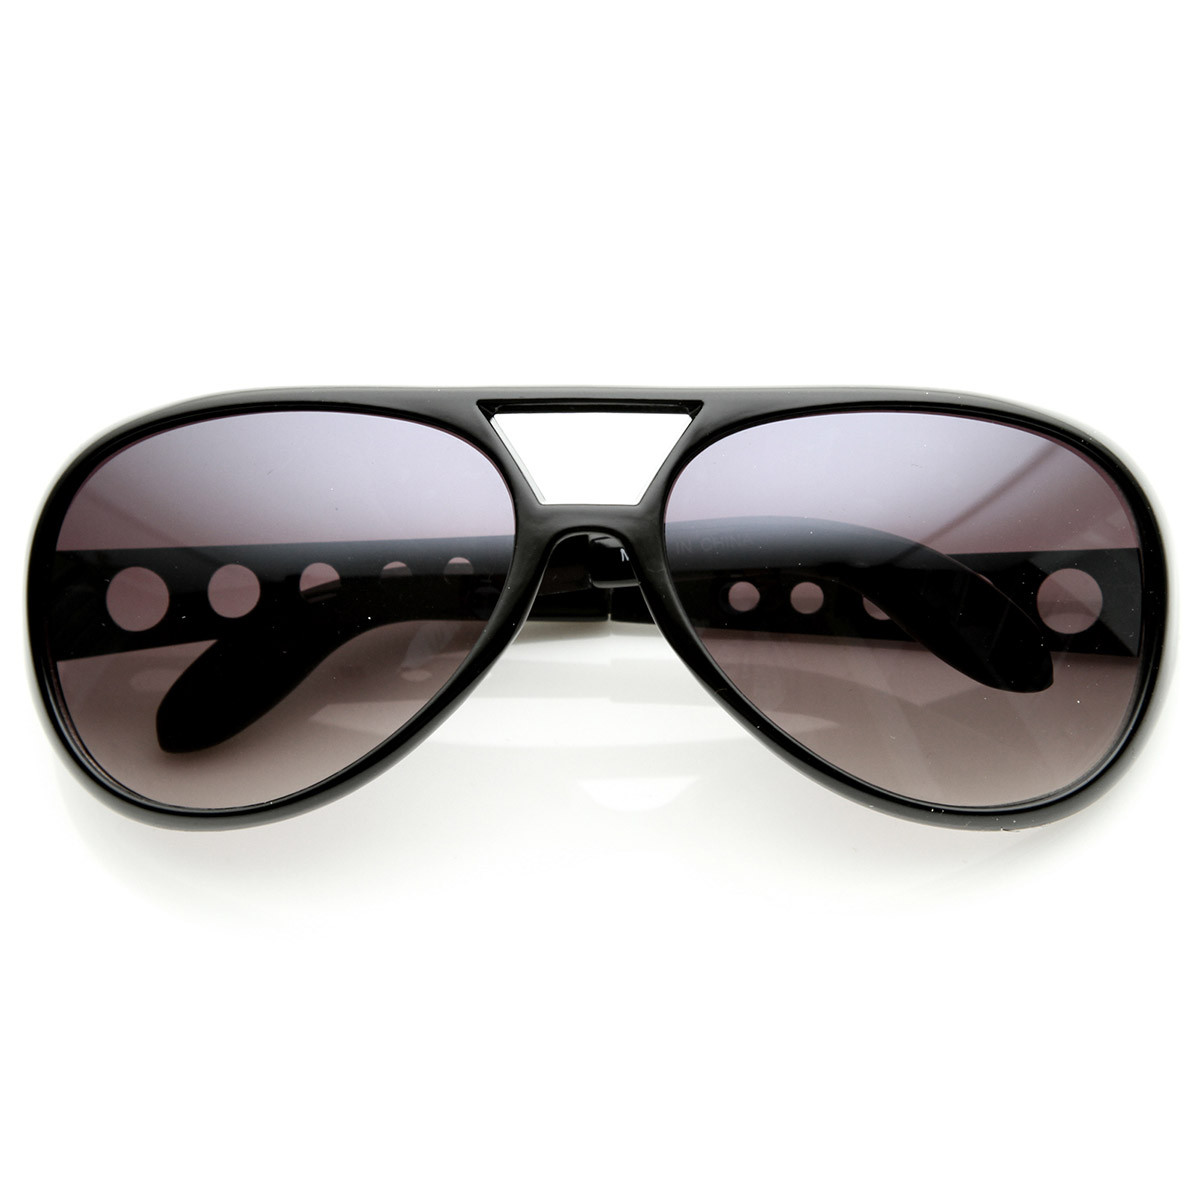 elvis sunglasses  elvis sunglasses